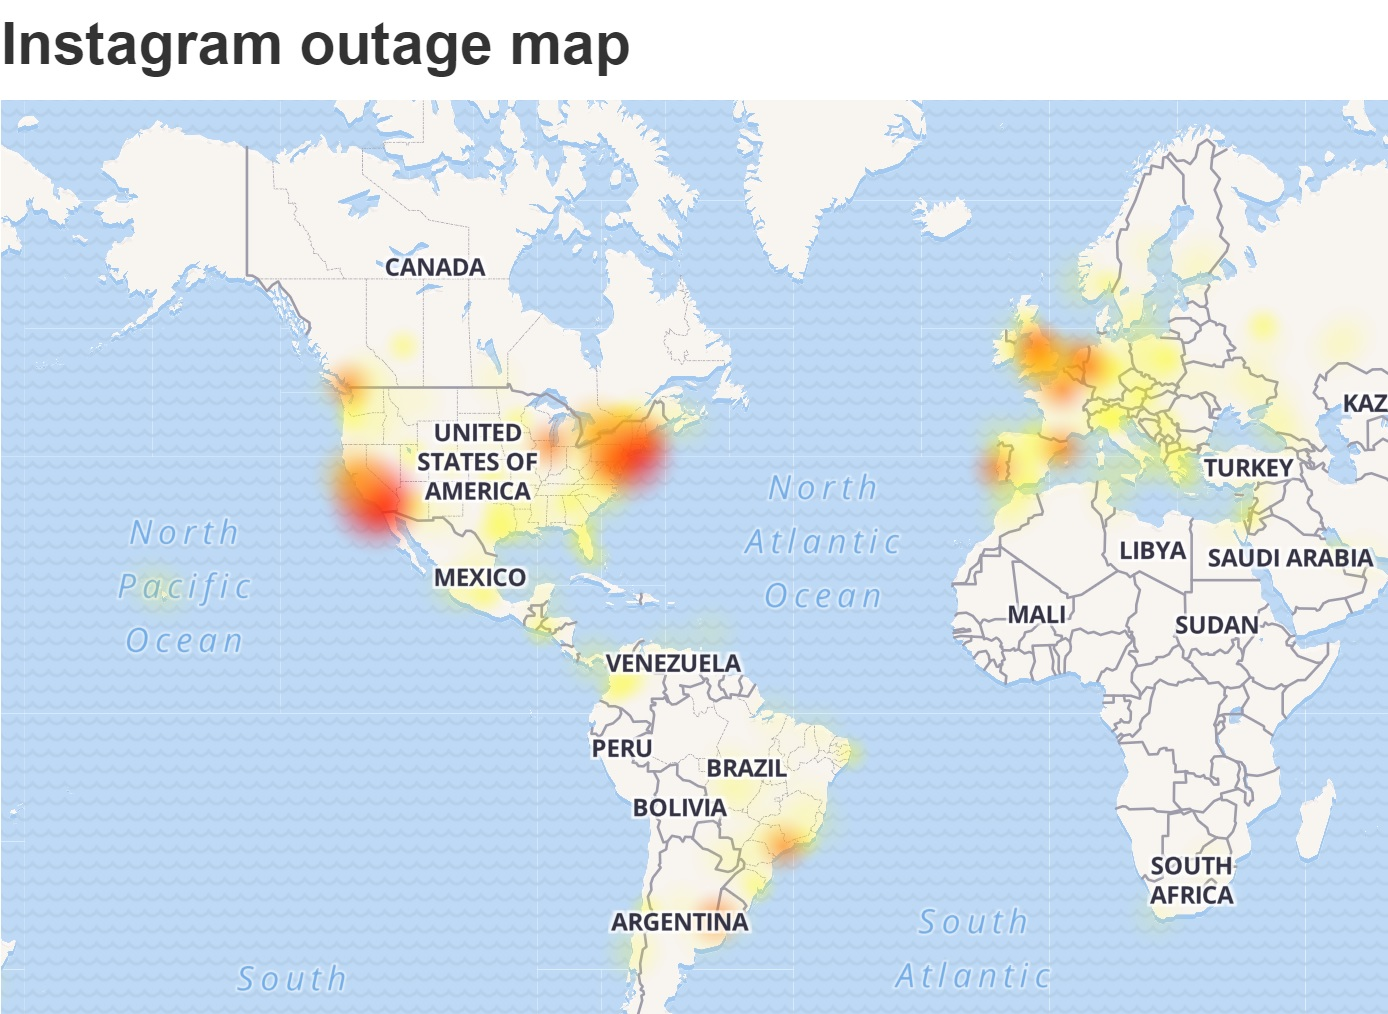 Instagram, PlayStation hit with outages